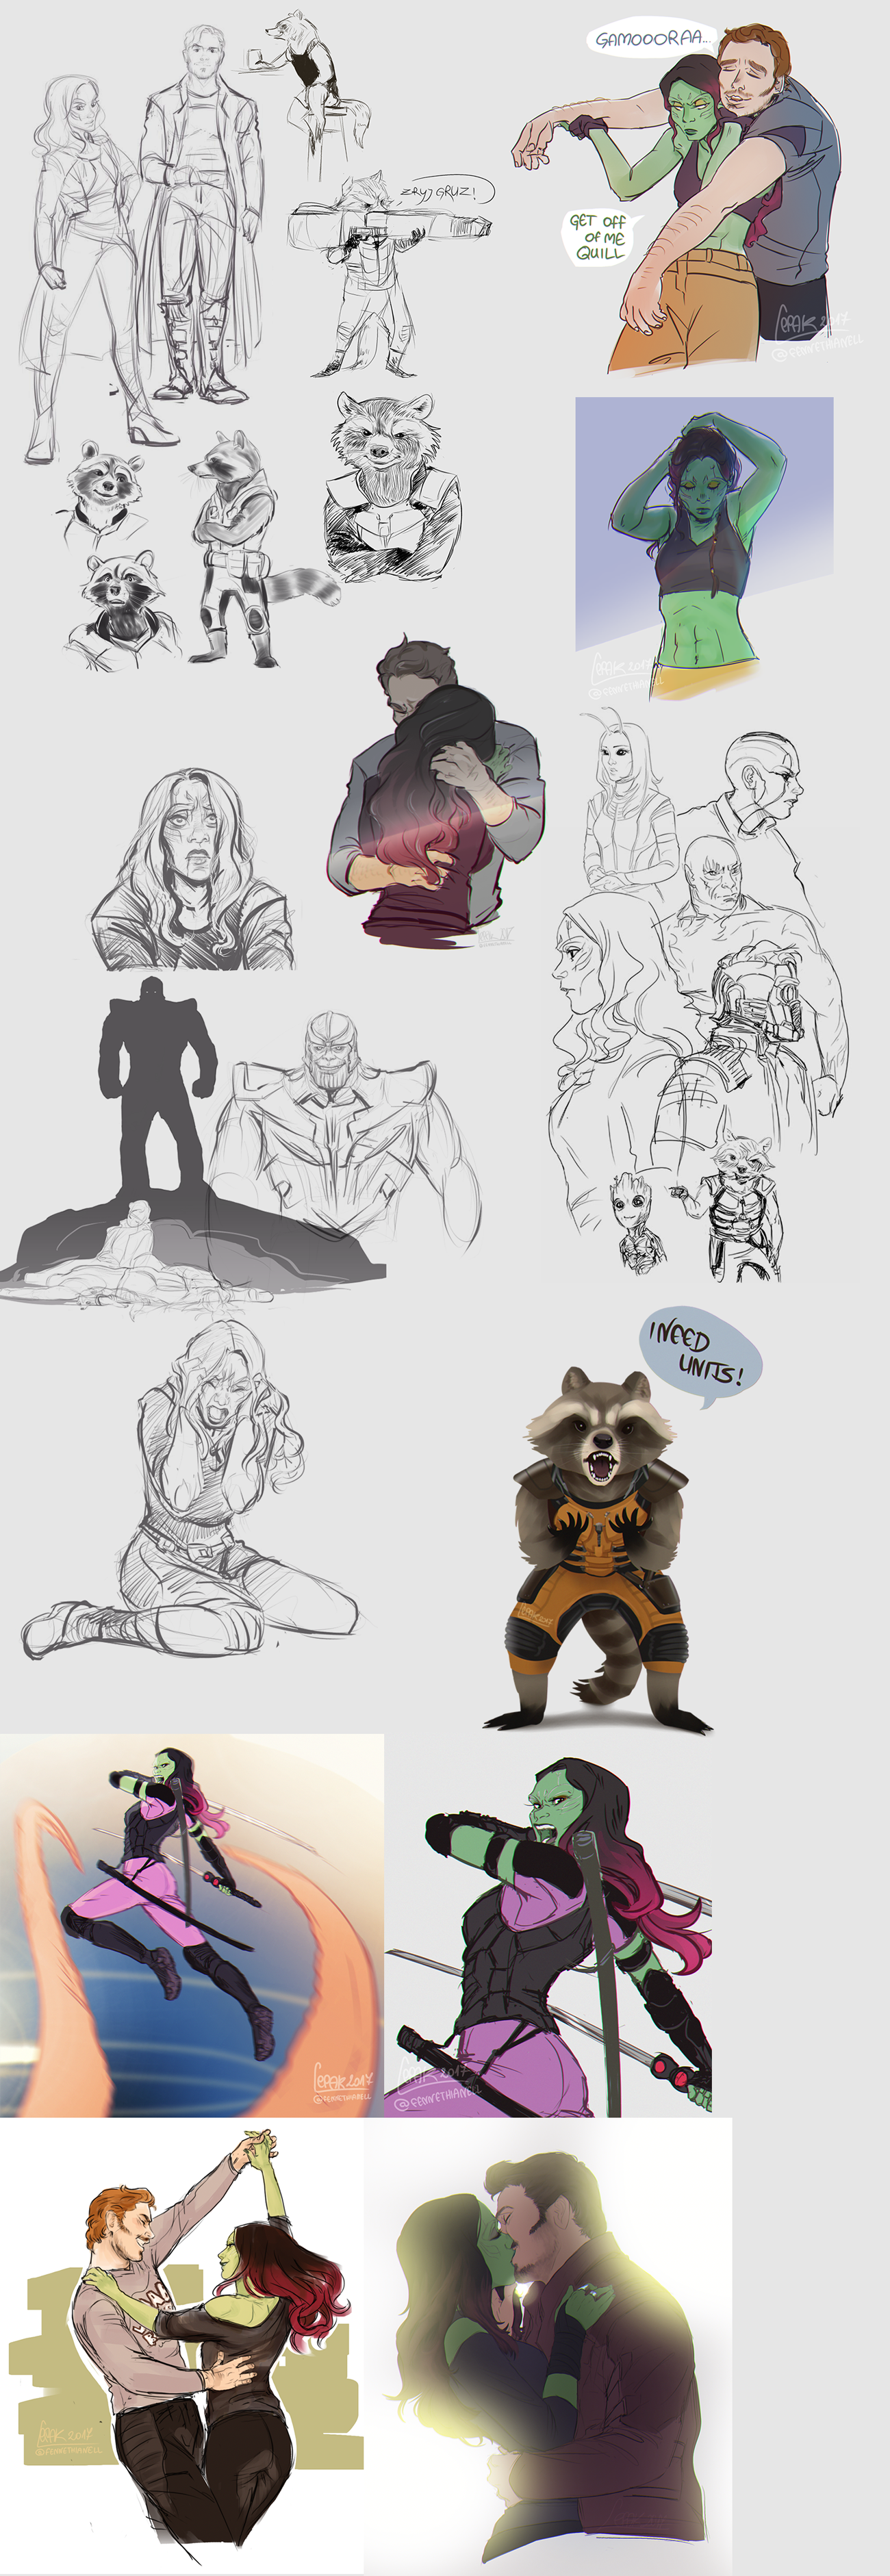 GotG Dump by Fennethianell on DeviantArt